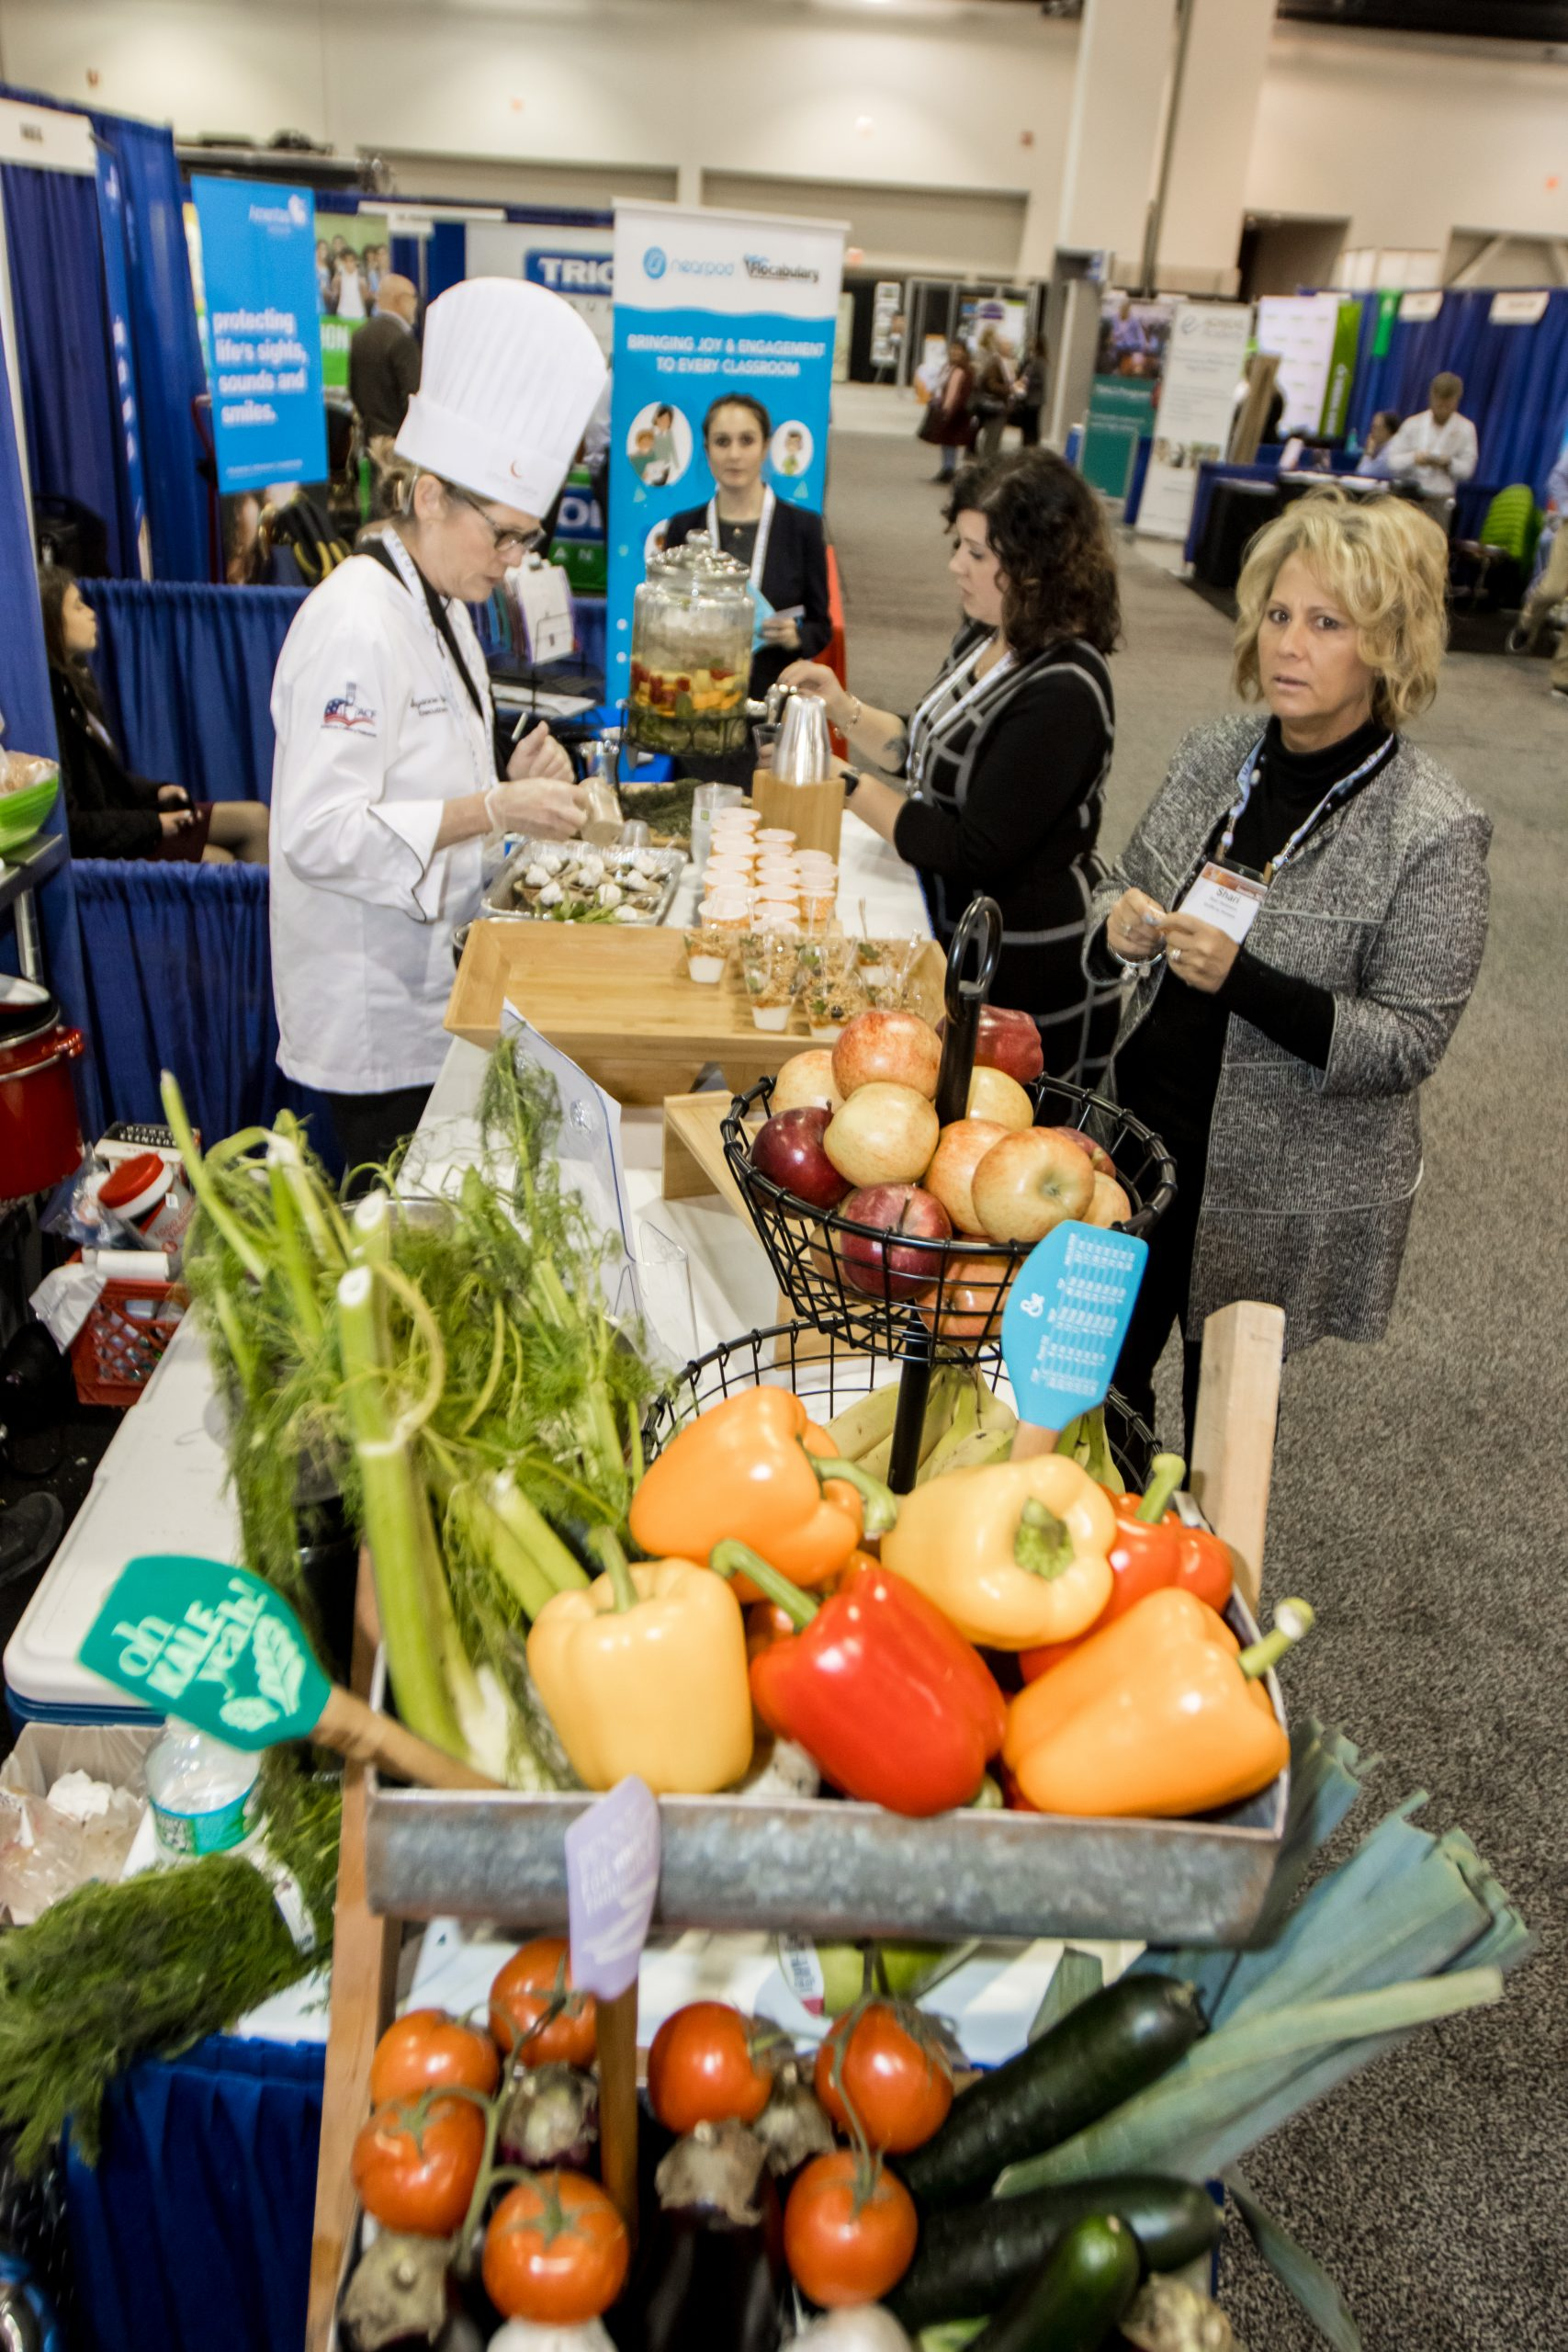 An Exhibit Hall presenter prepares food at the State Education Convention.